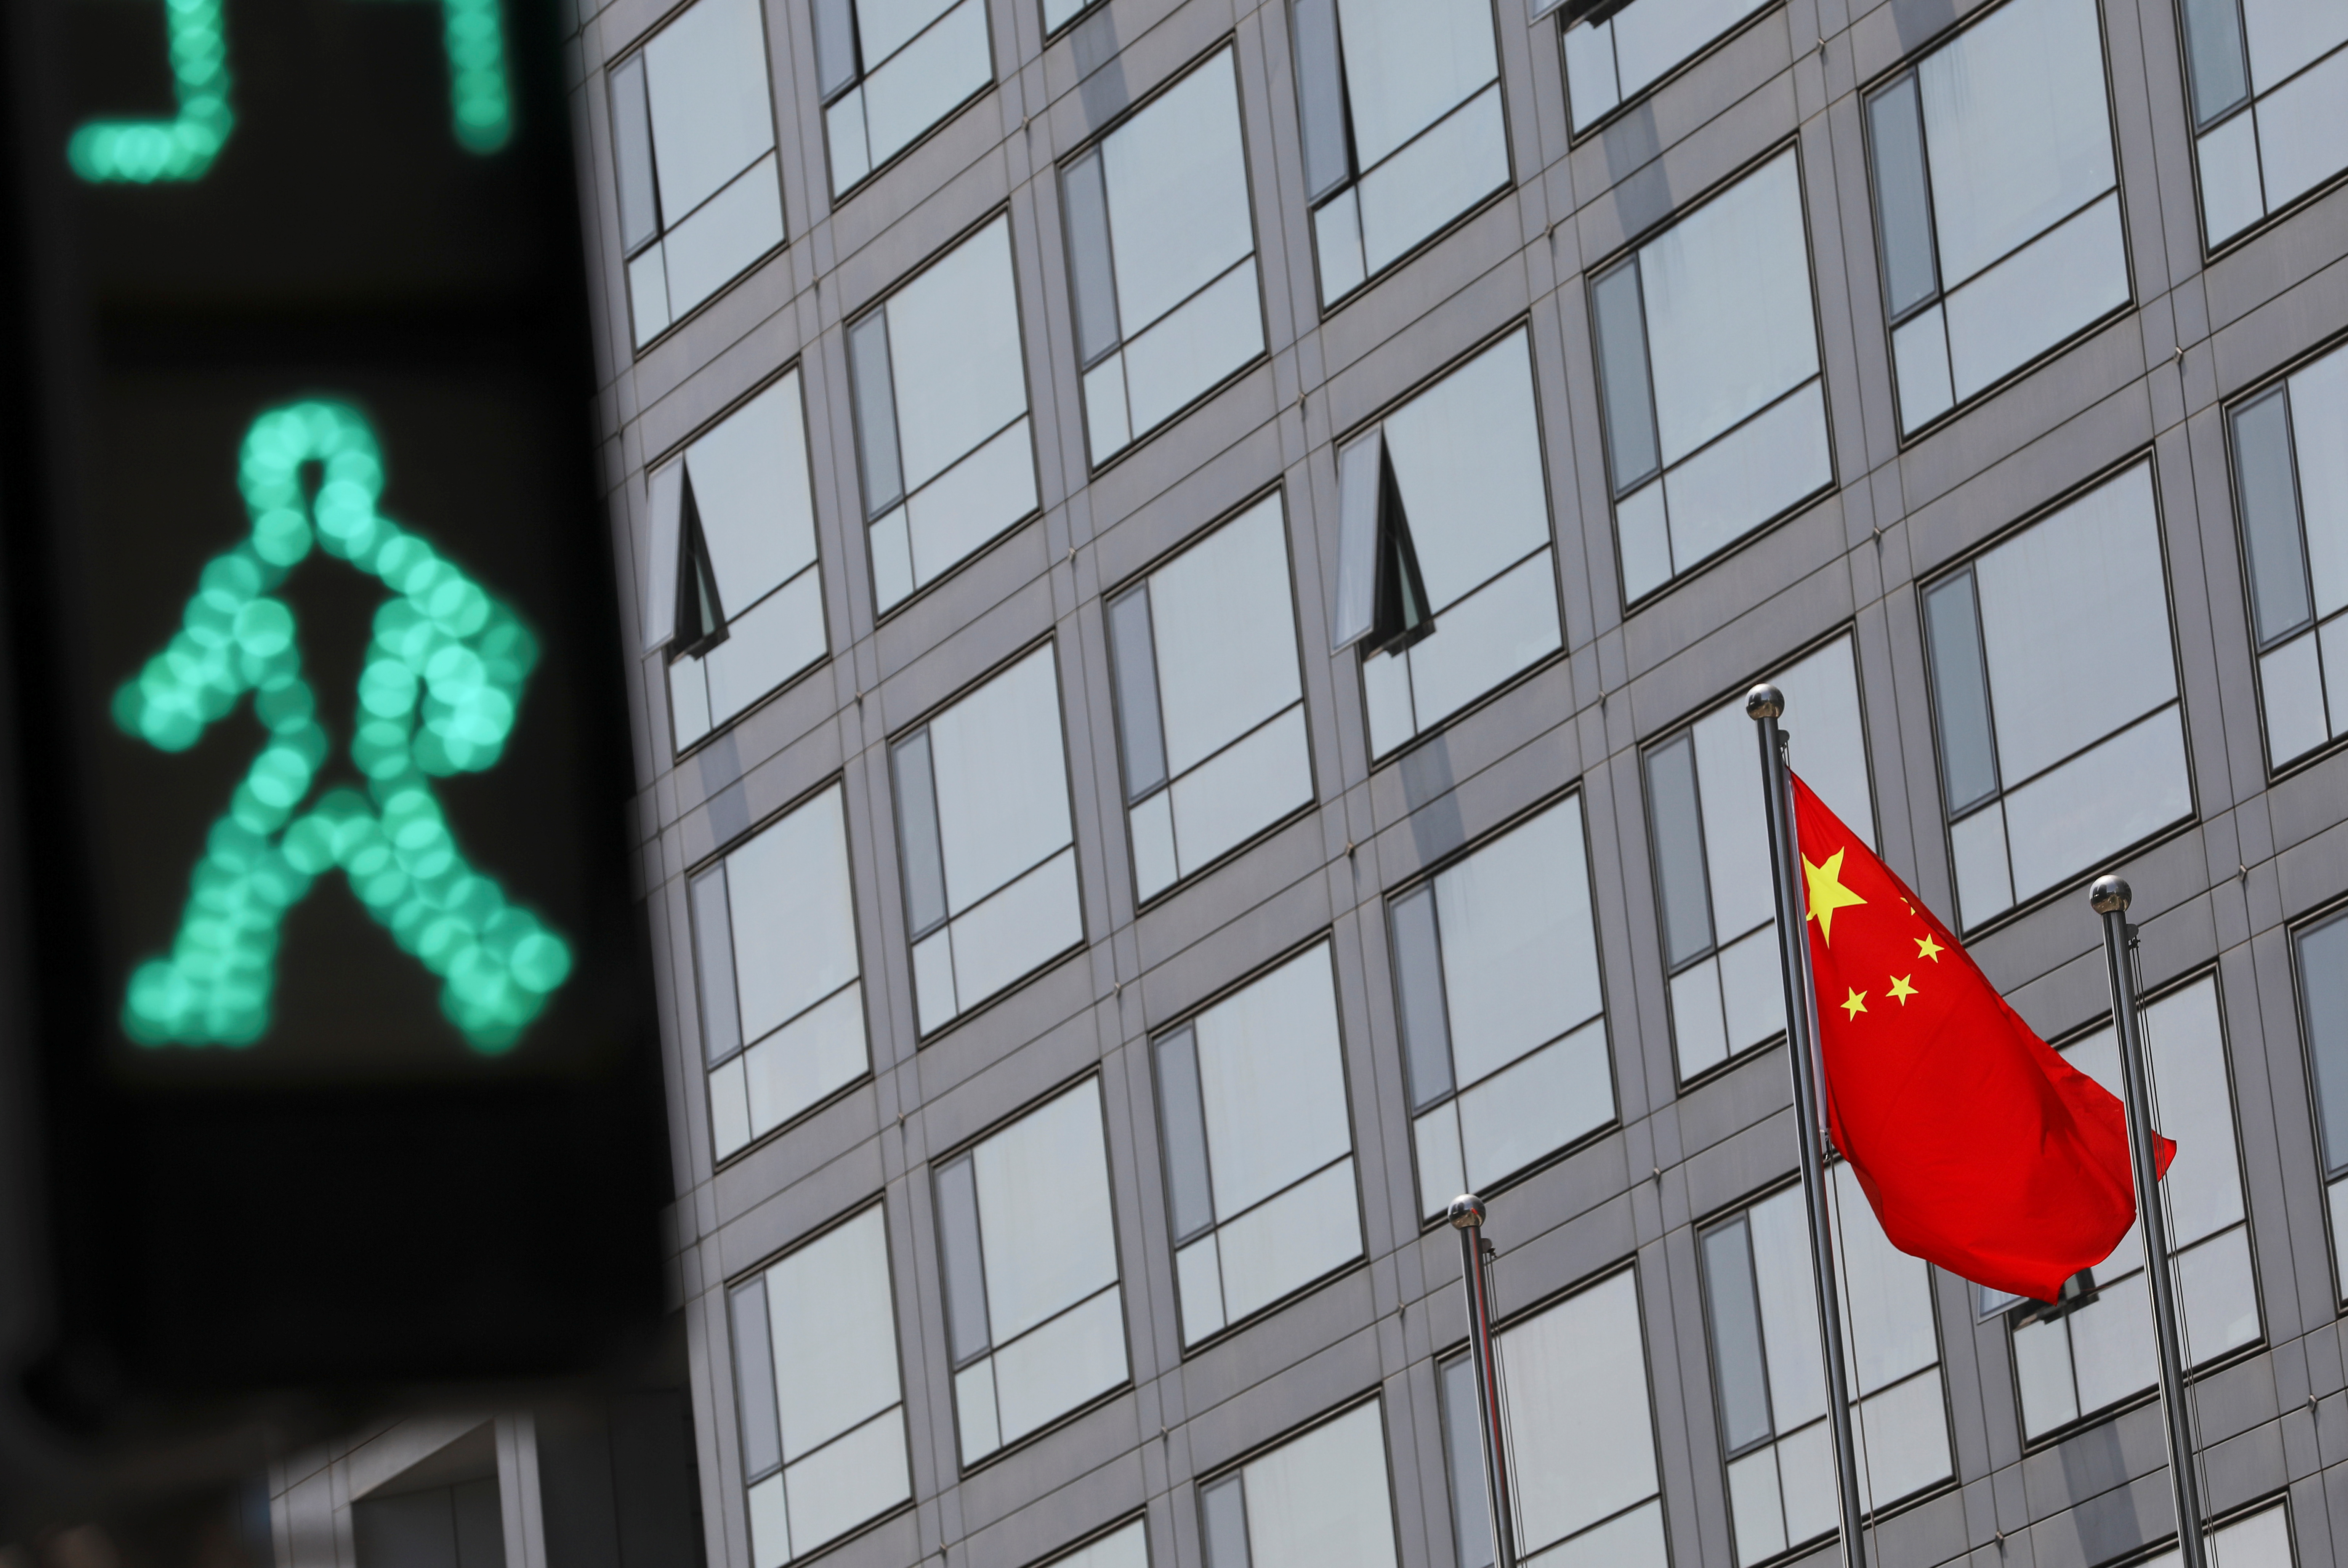 A Chinese national flag flutters outside the China Securities Regulatory Commission (CSRC) building on the Financial Street in Beijing, China July 9, 2021. REUTERS/Tingshu Wang